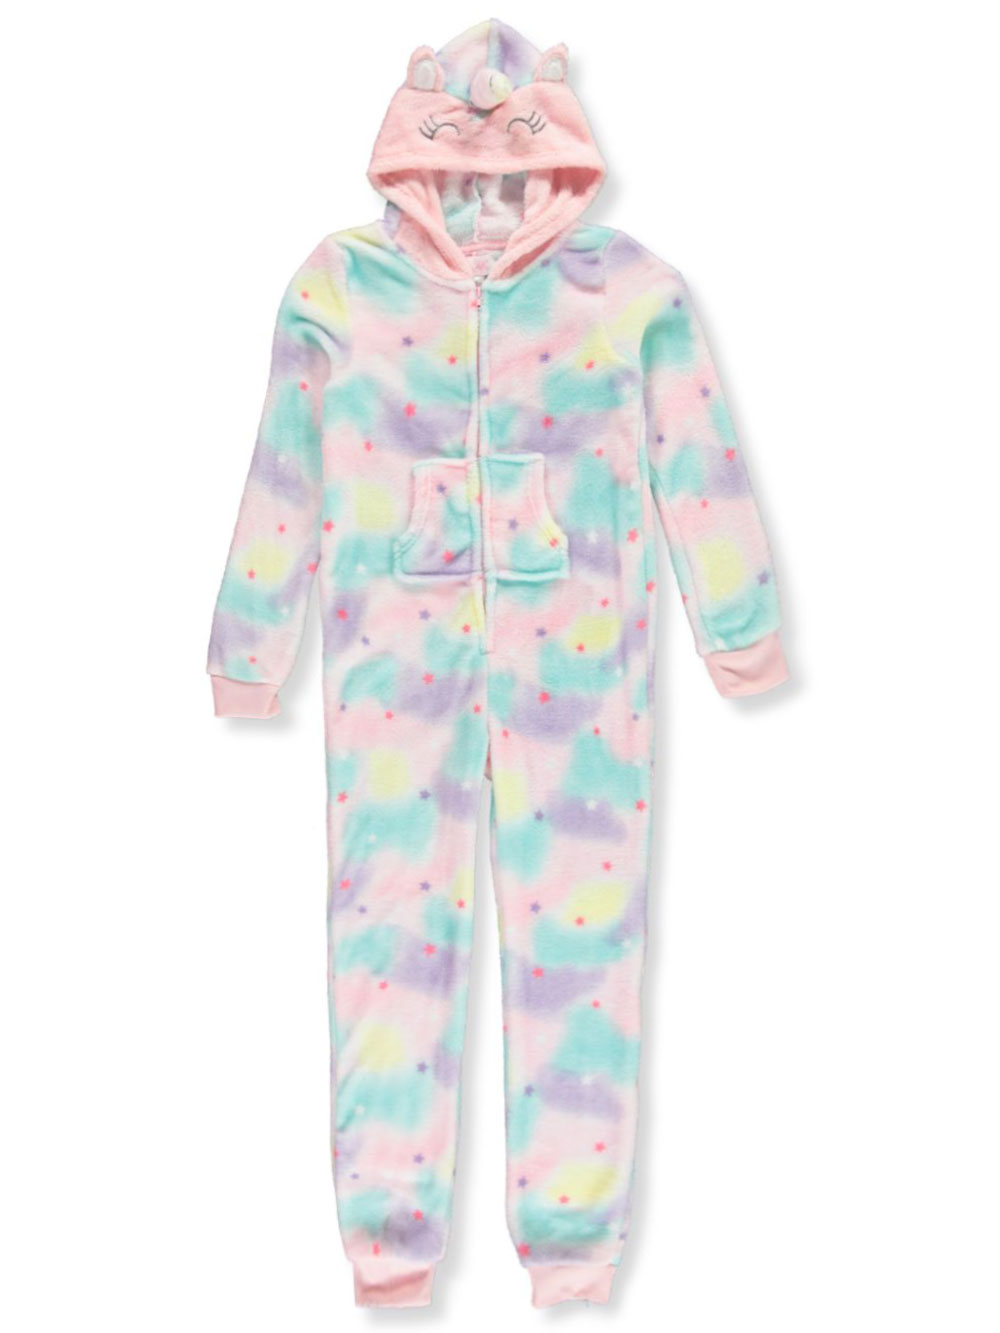 Girls Fashion 1-Piece Pajamas